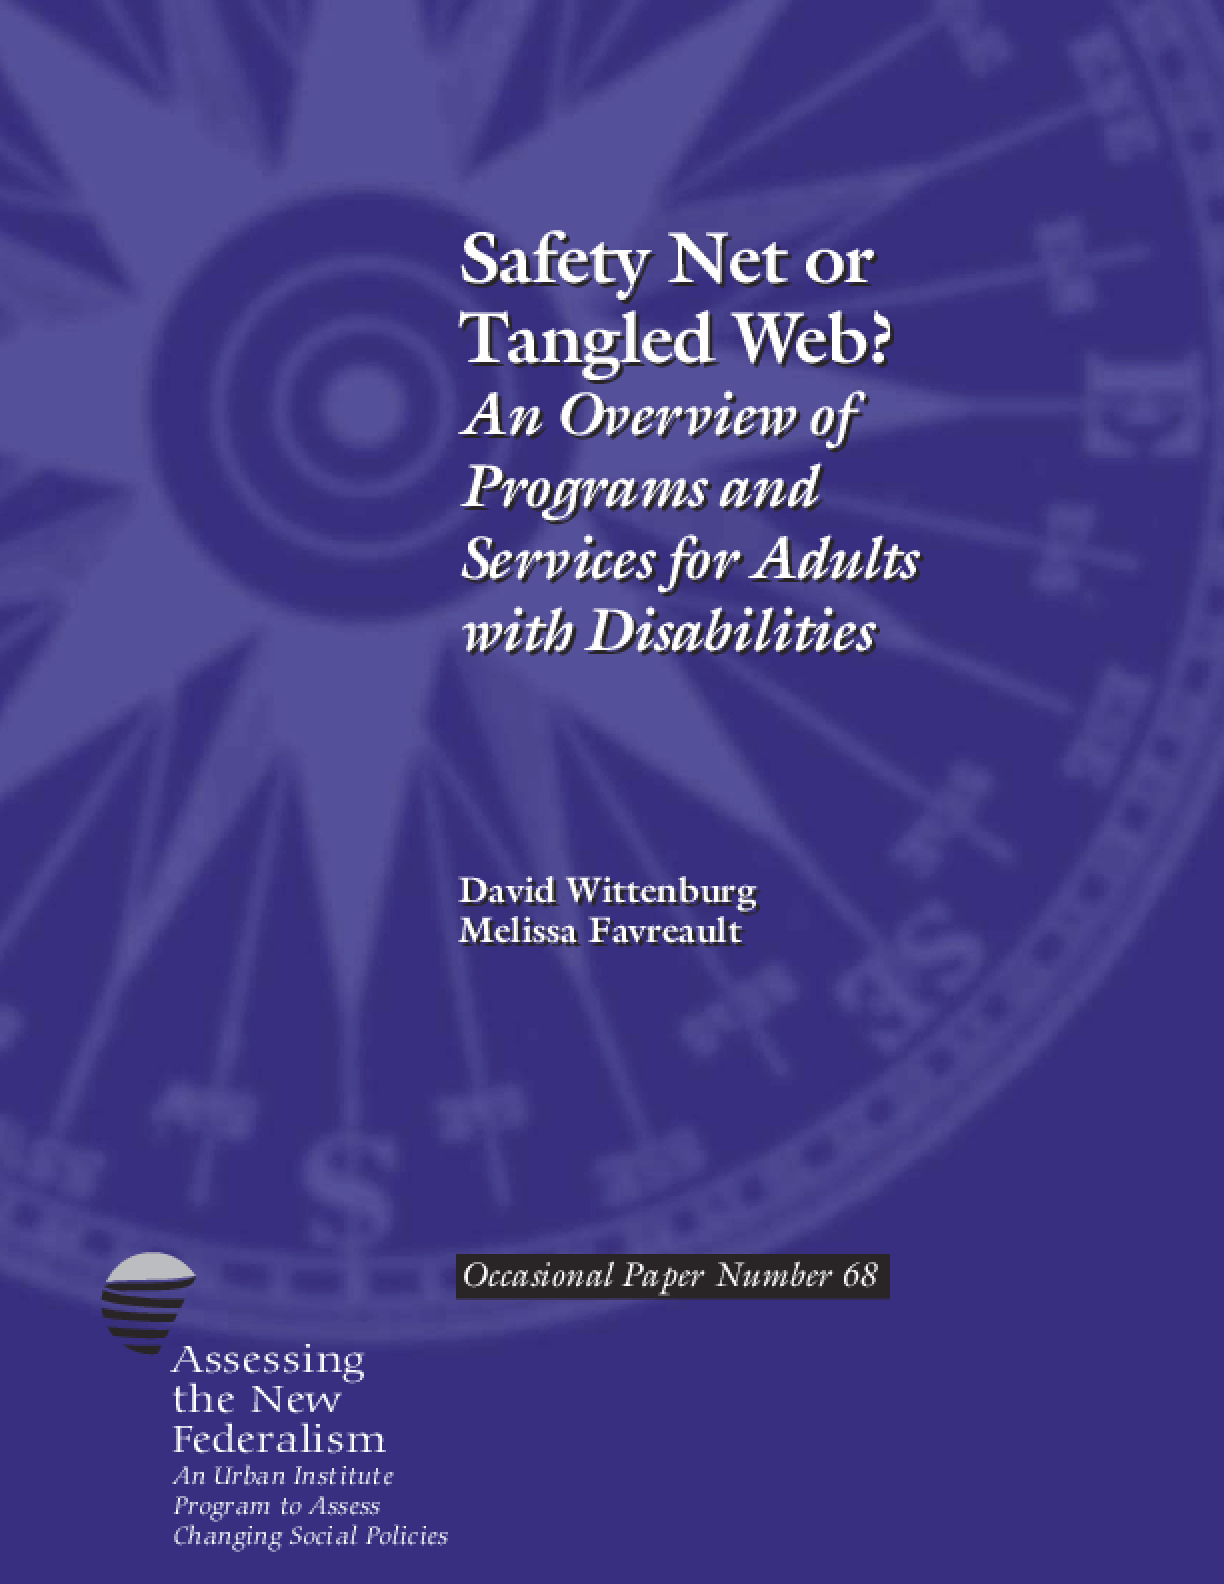 Safety Net or Tangled Web? An Overview of Programs and Services for Adults with Disabilities